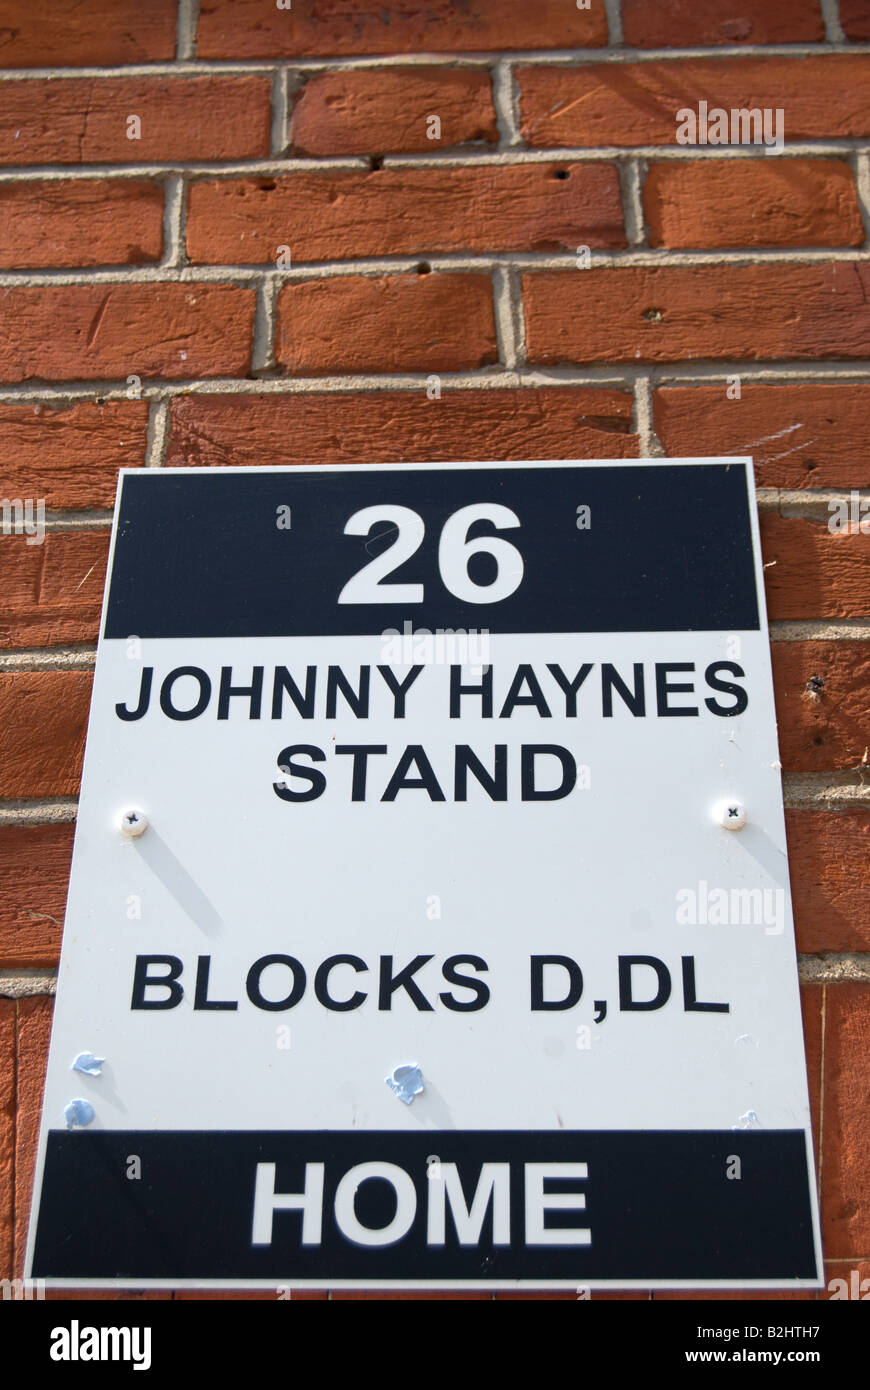 sign for the johnny haynes stand at craven cottage, home of fulham football club, southwest london, england - Stock Image